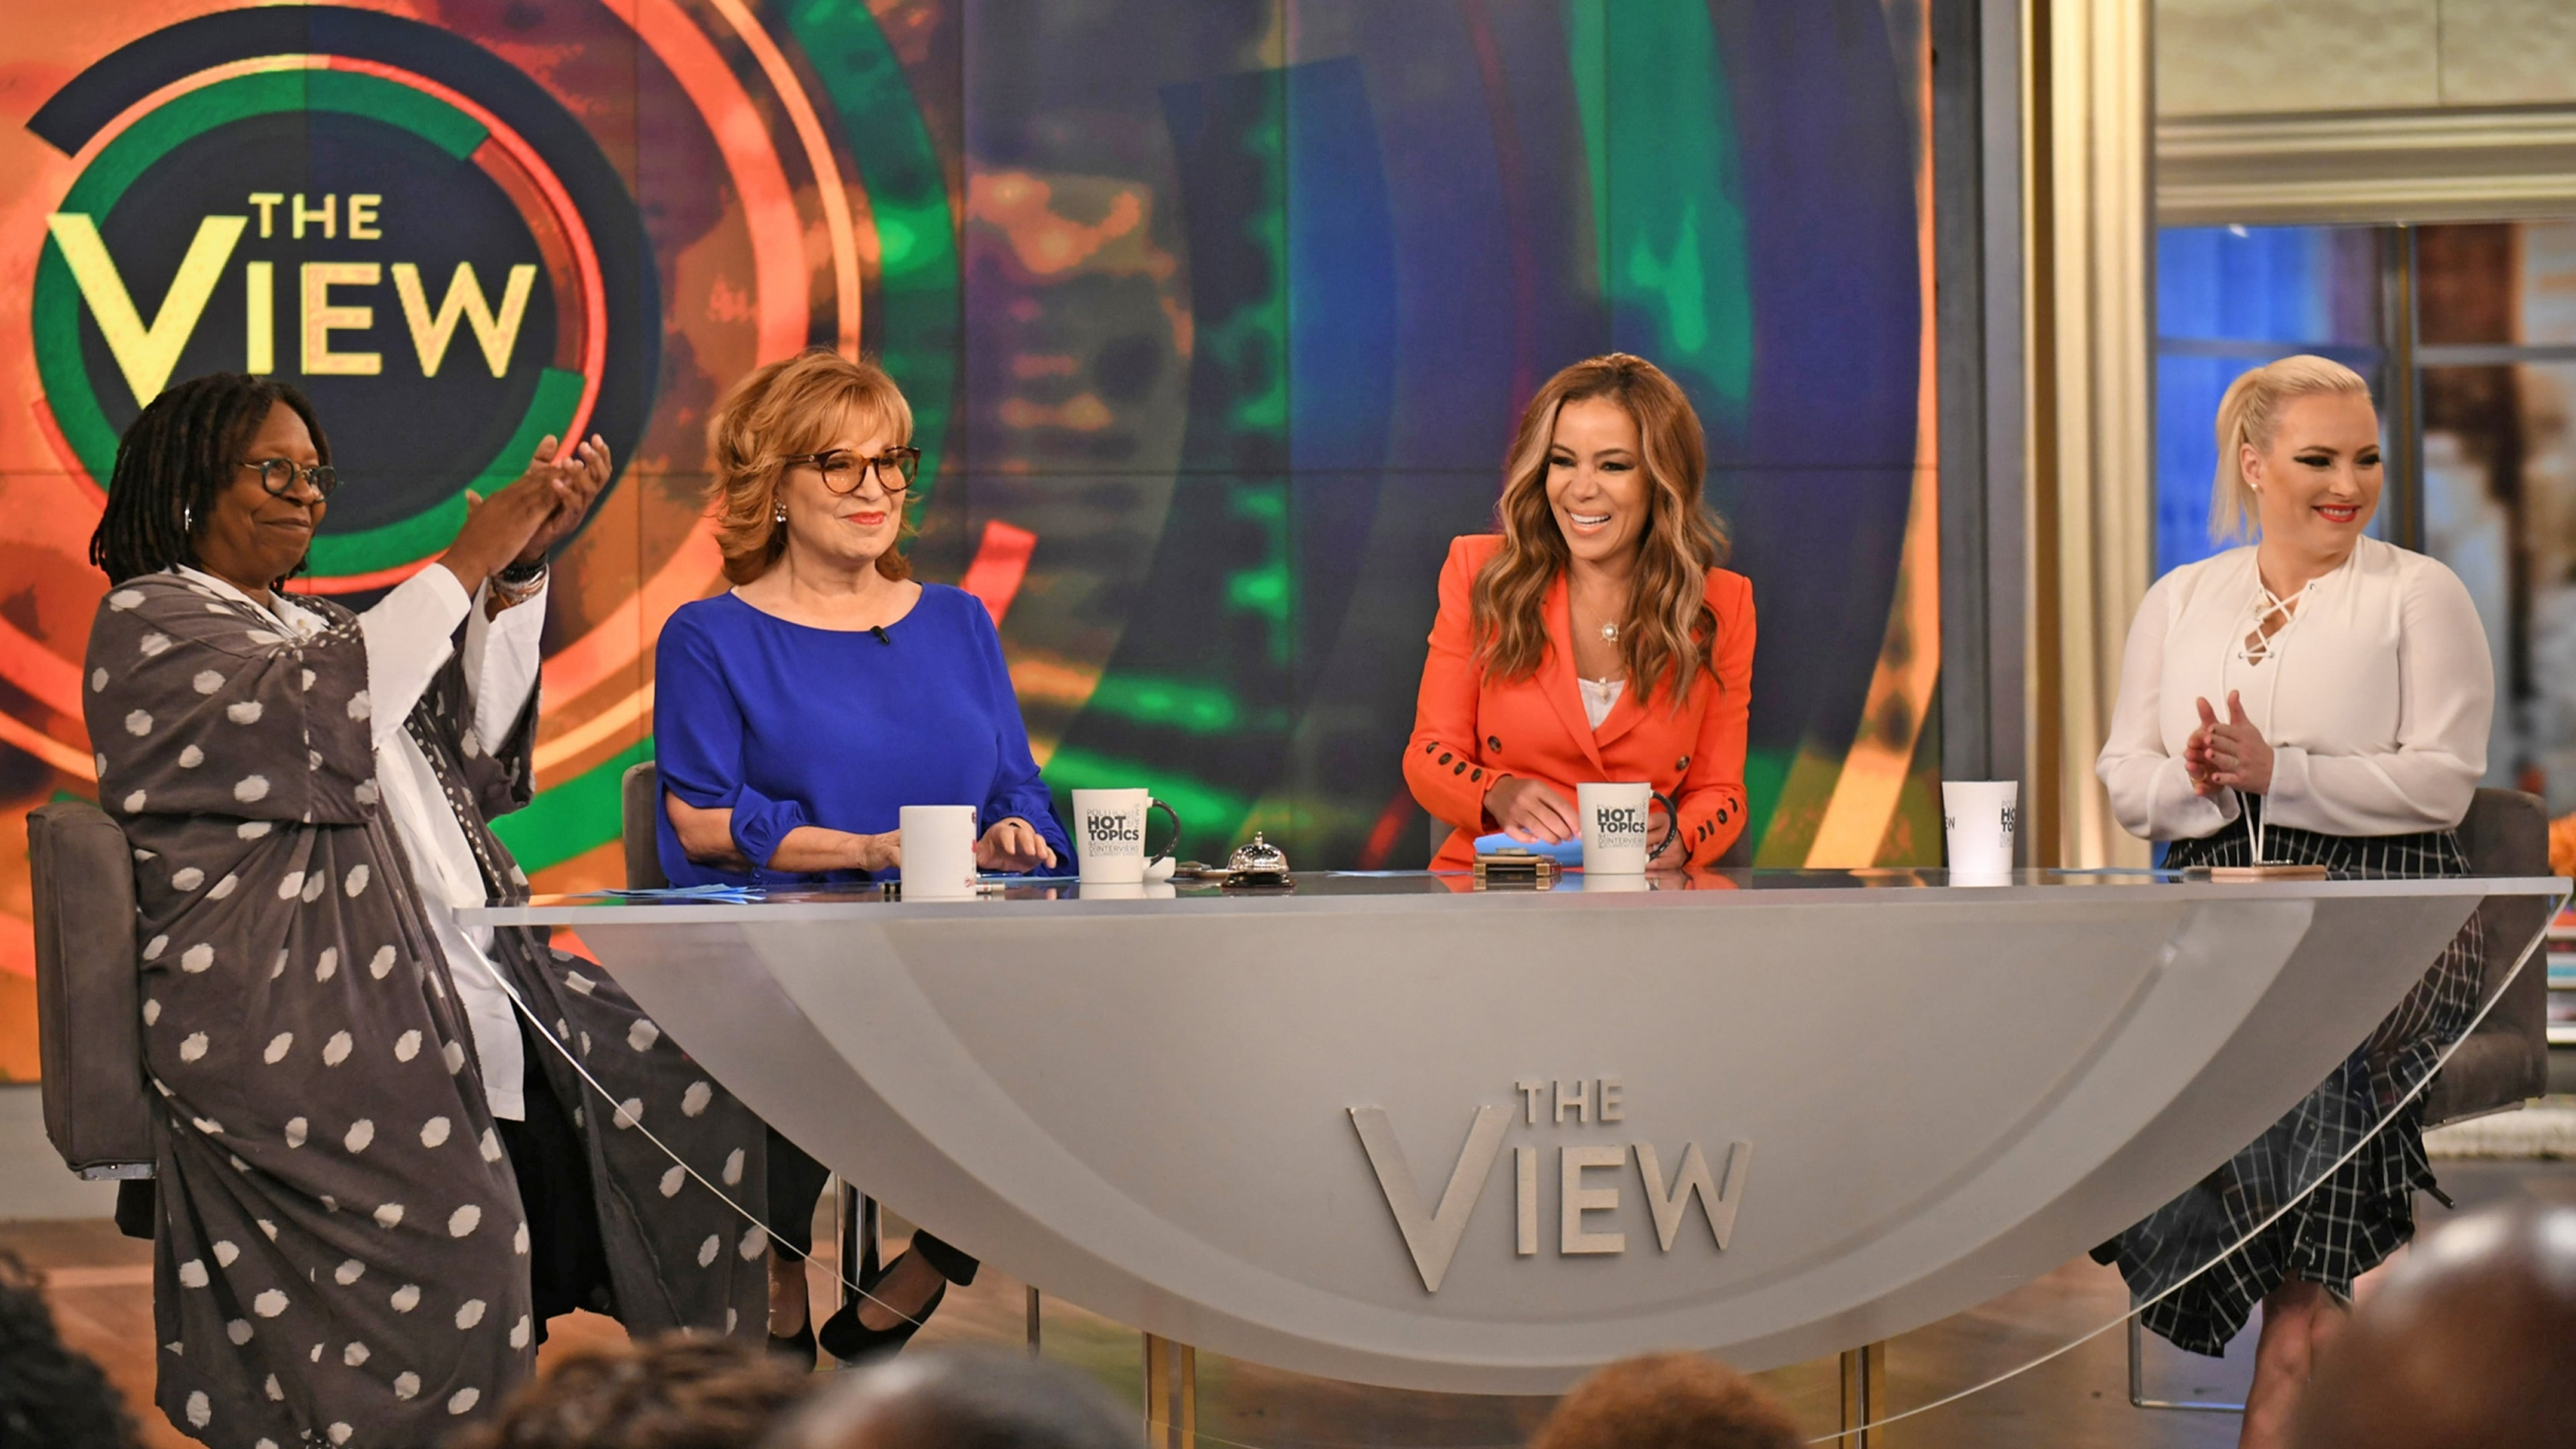 The View - Season 3 Episode 306 : Season 3, Episode 306